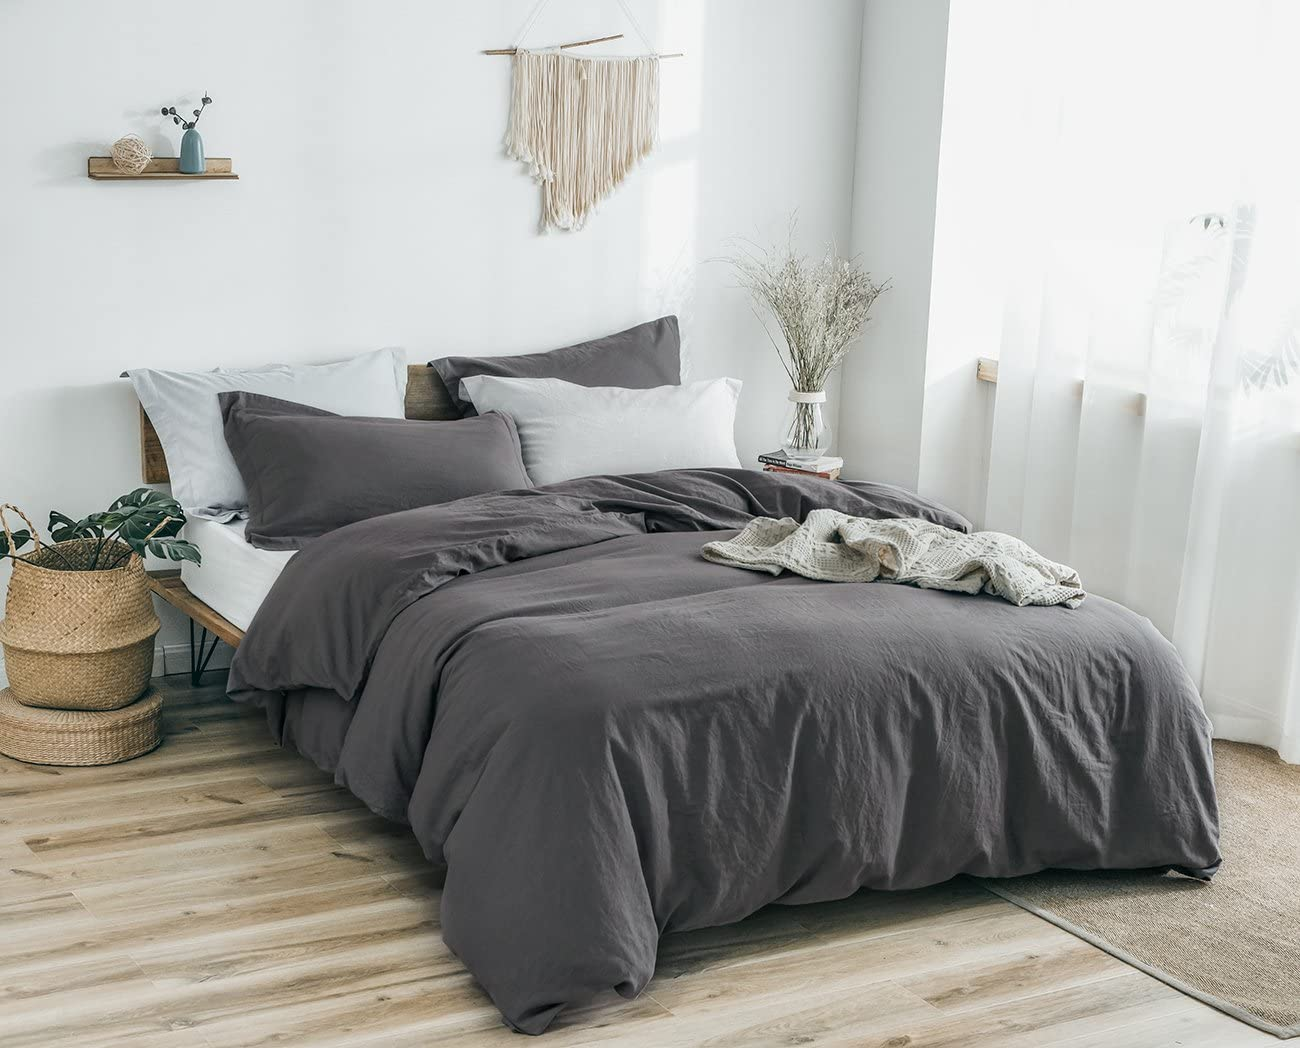 PHF Washed Linen Cotton Duvet Cover and 2 Pillowshams Luxury Soft Vintage Bedding Set for Winter King Size Charcoal 71Vx-HjmYYL